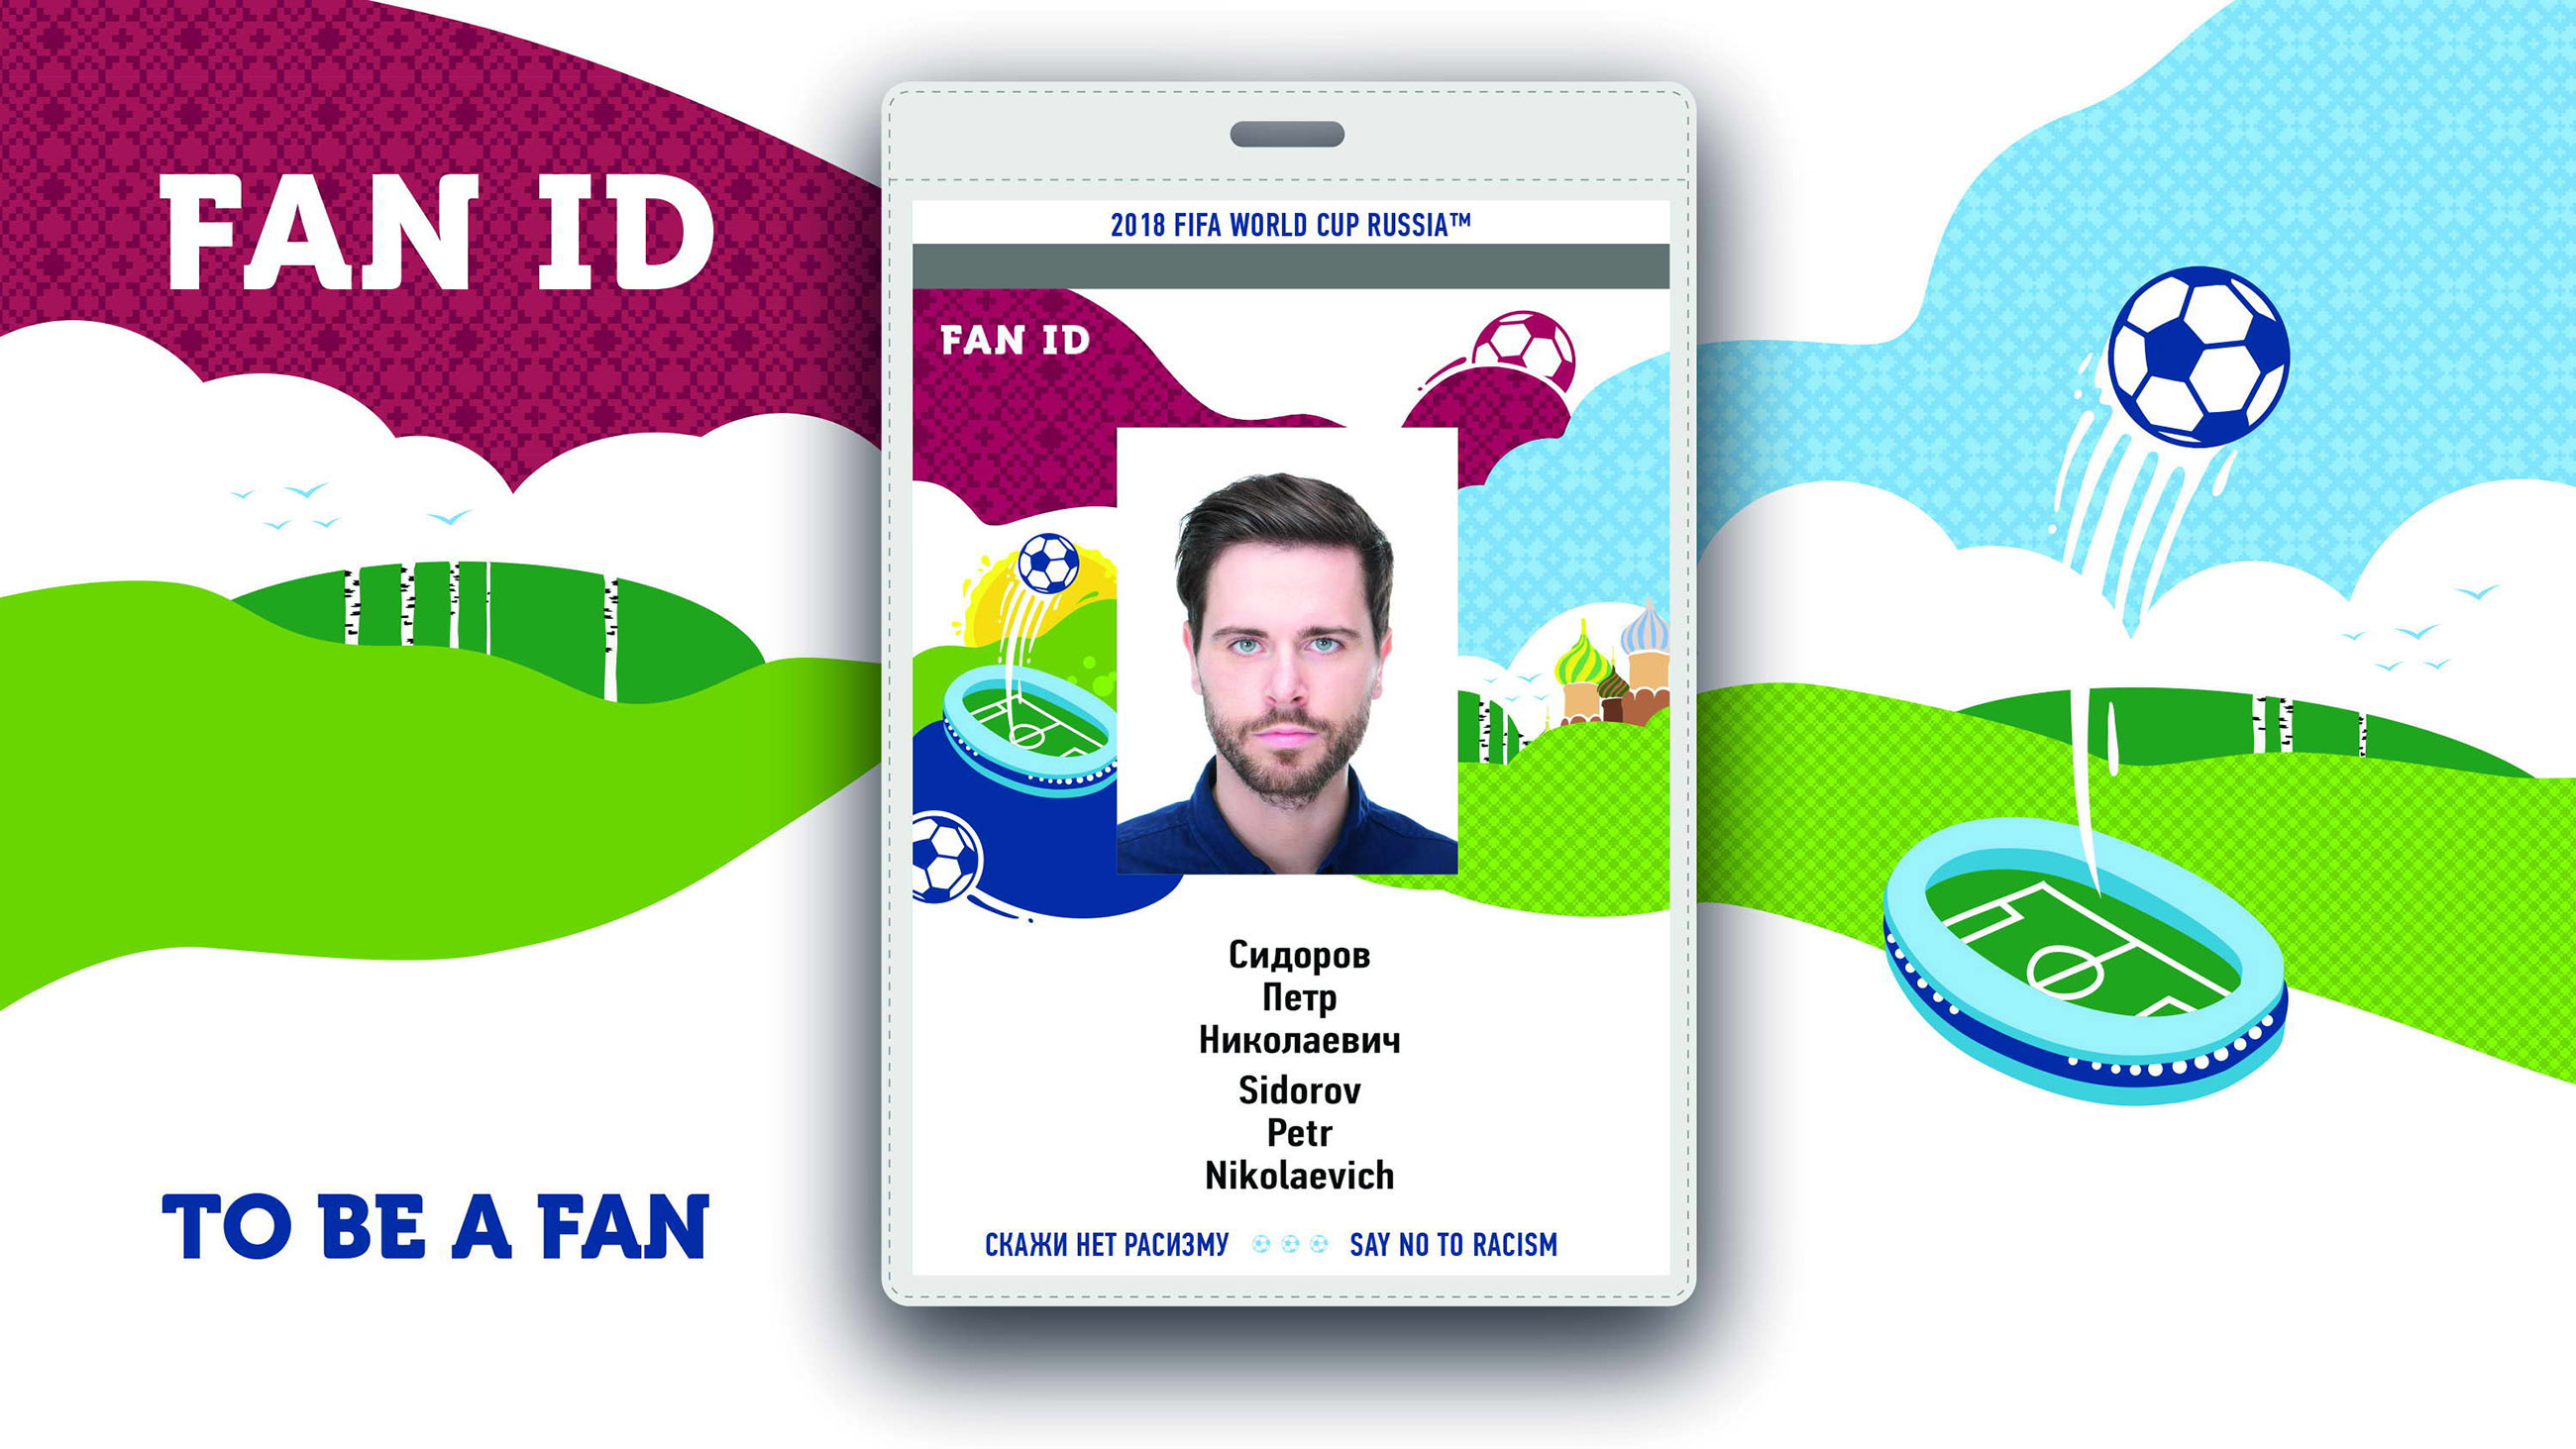 78b784d3d FAN ID registration for the 2018 FIFA World Cup Russia™ is now open